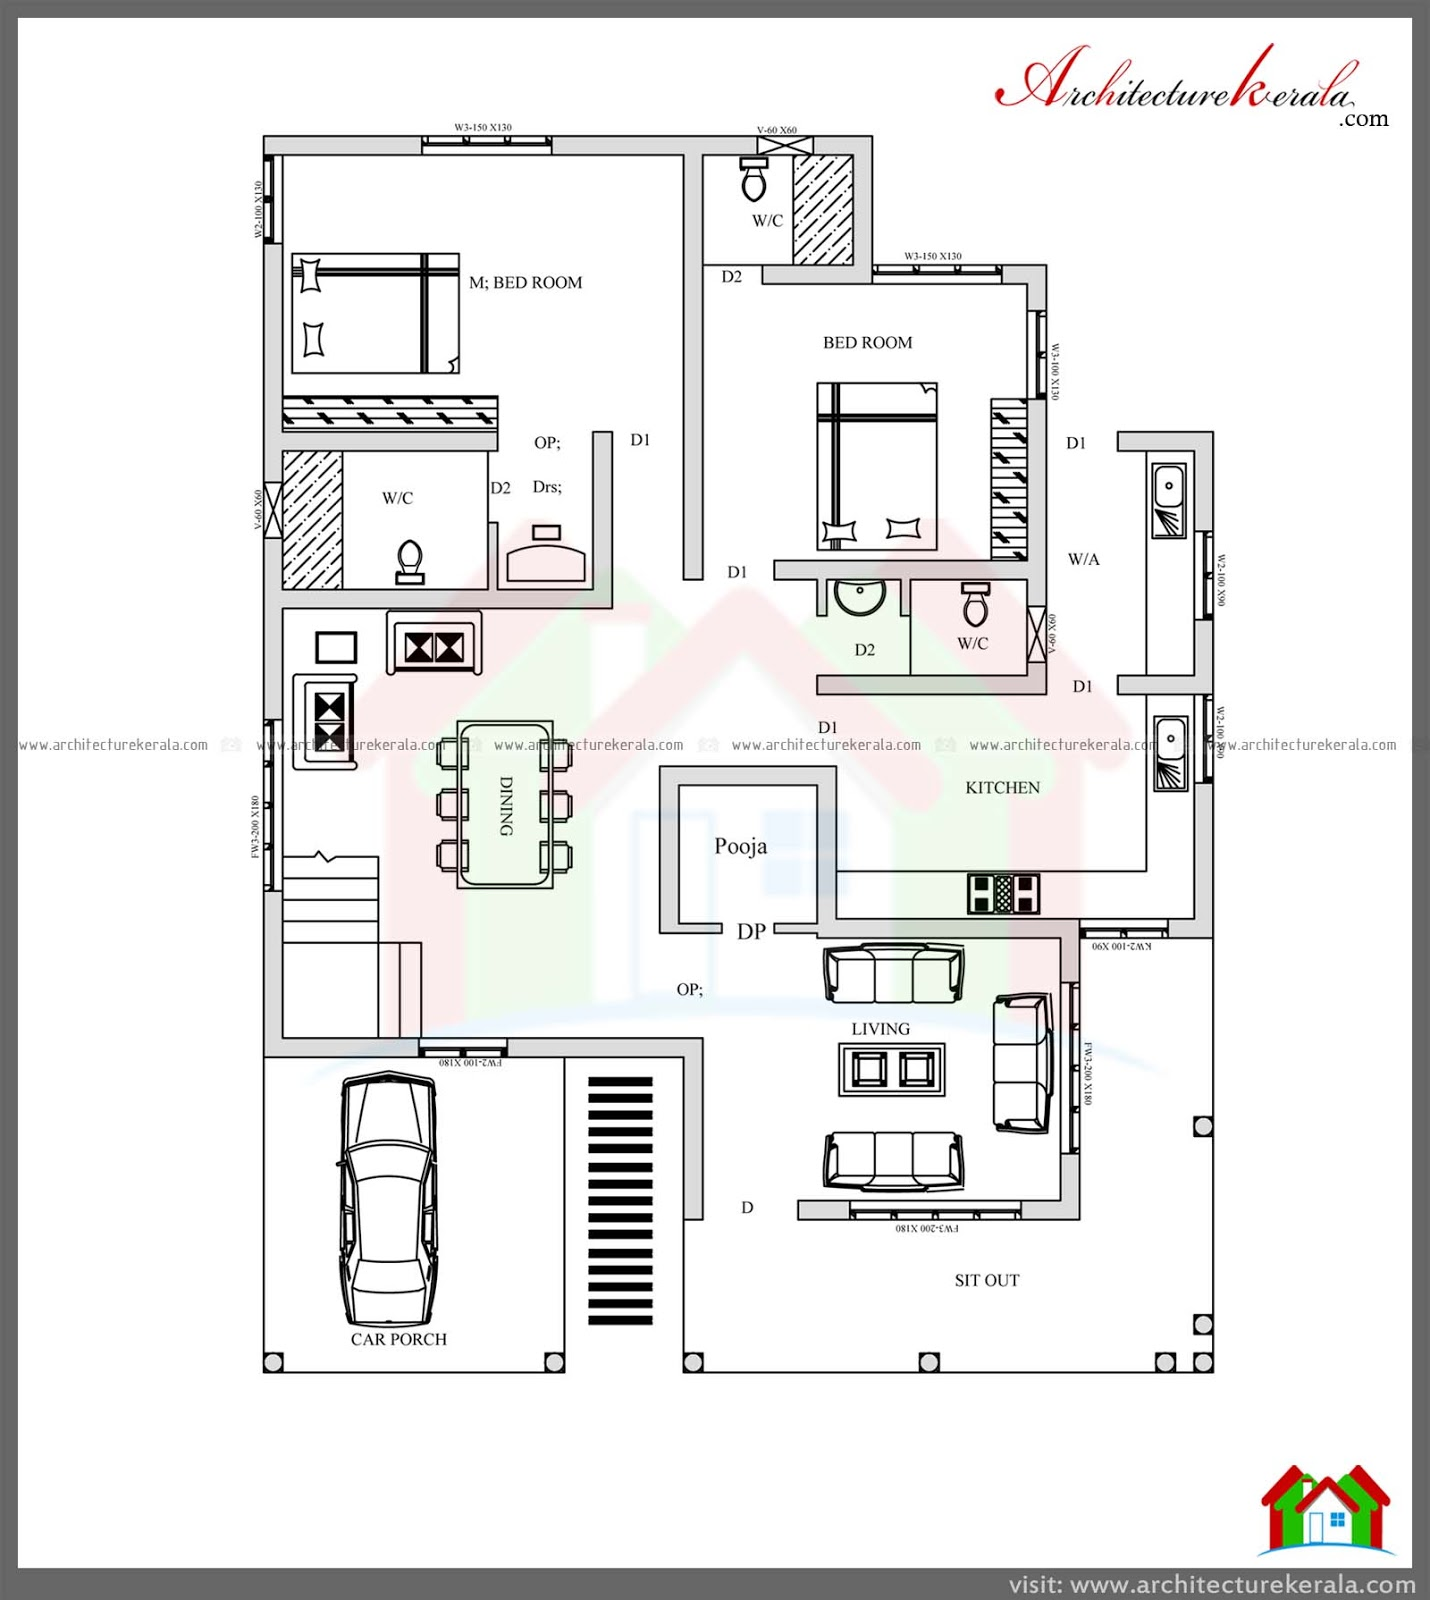 Stunning 4 bedroom kerala home design with pooja room free for Kerala house plan 3 bedroom